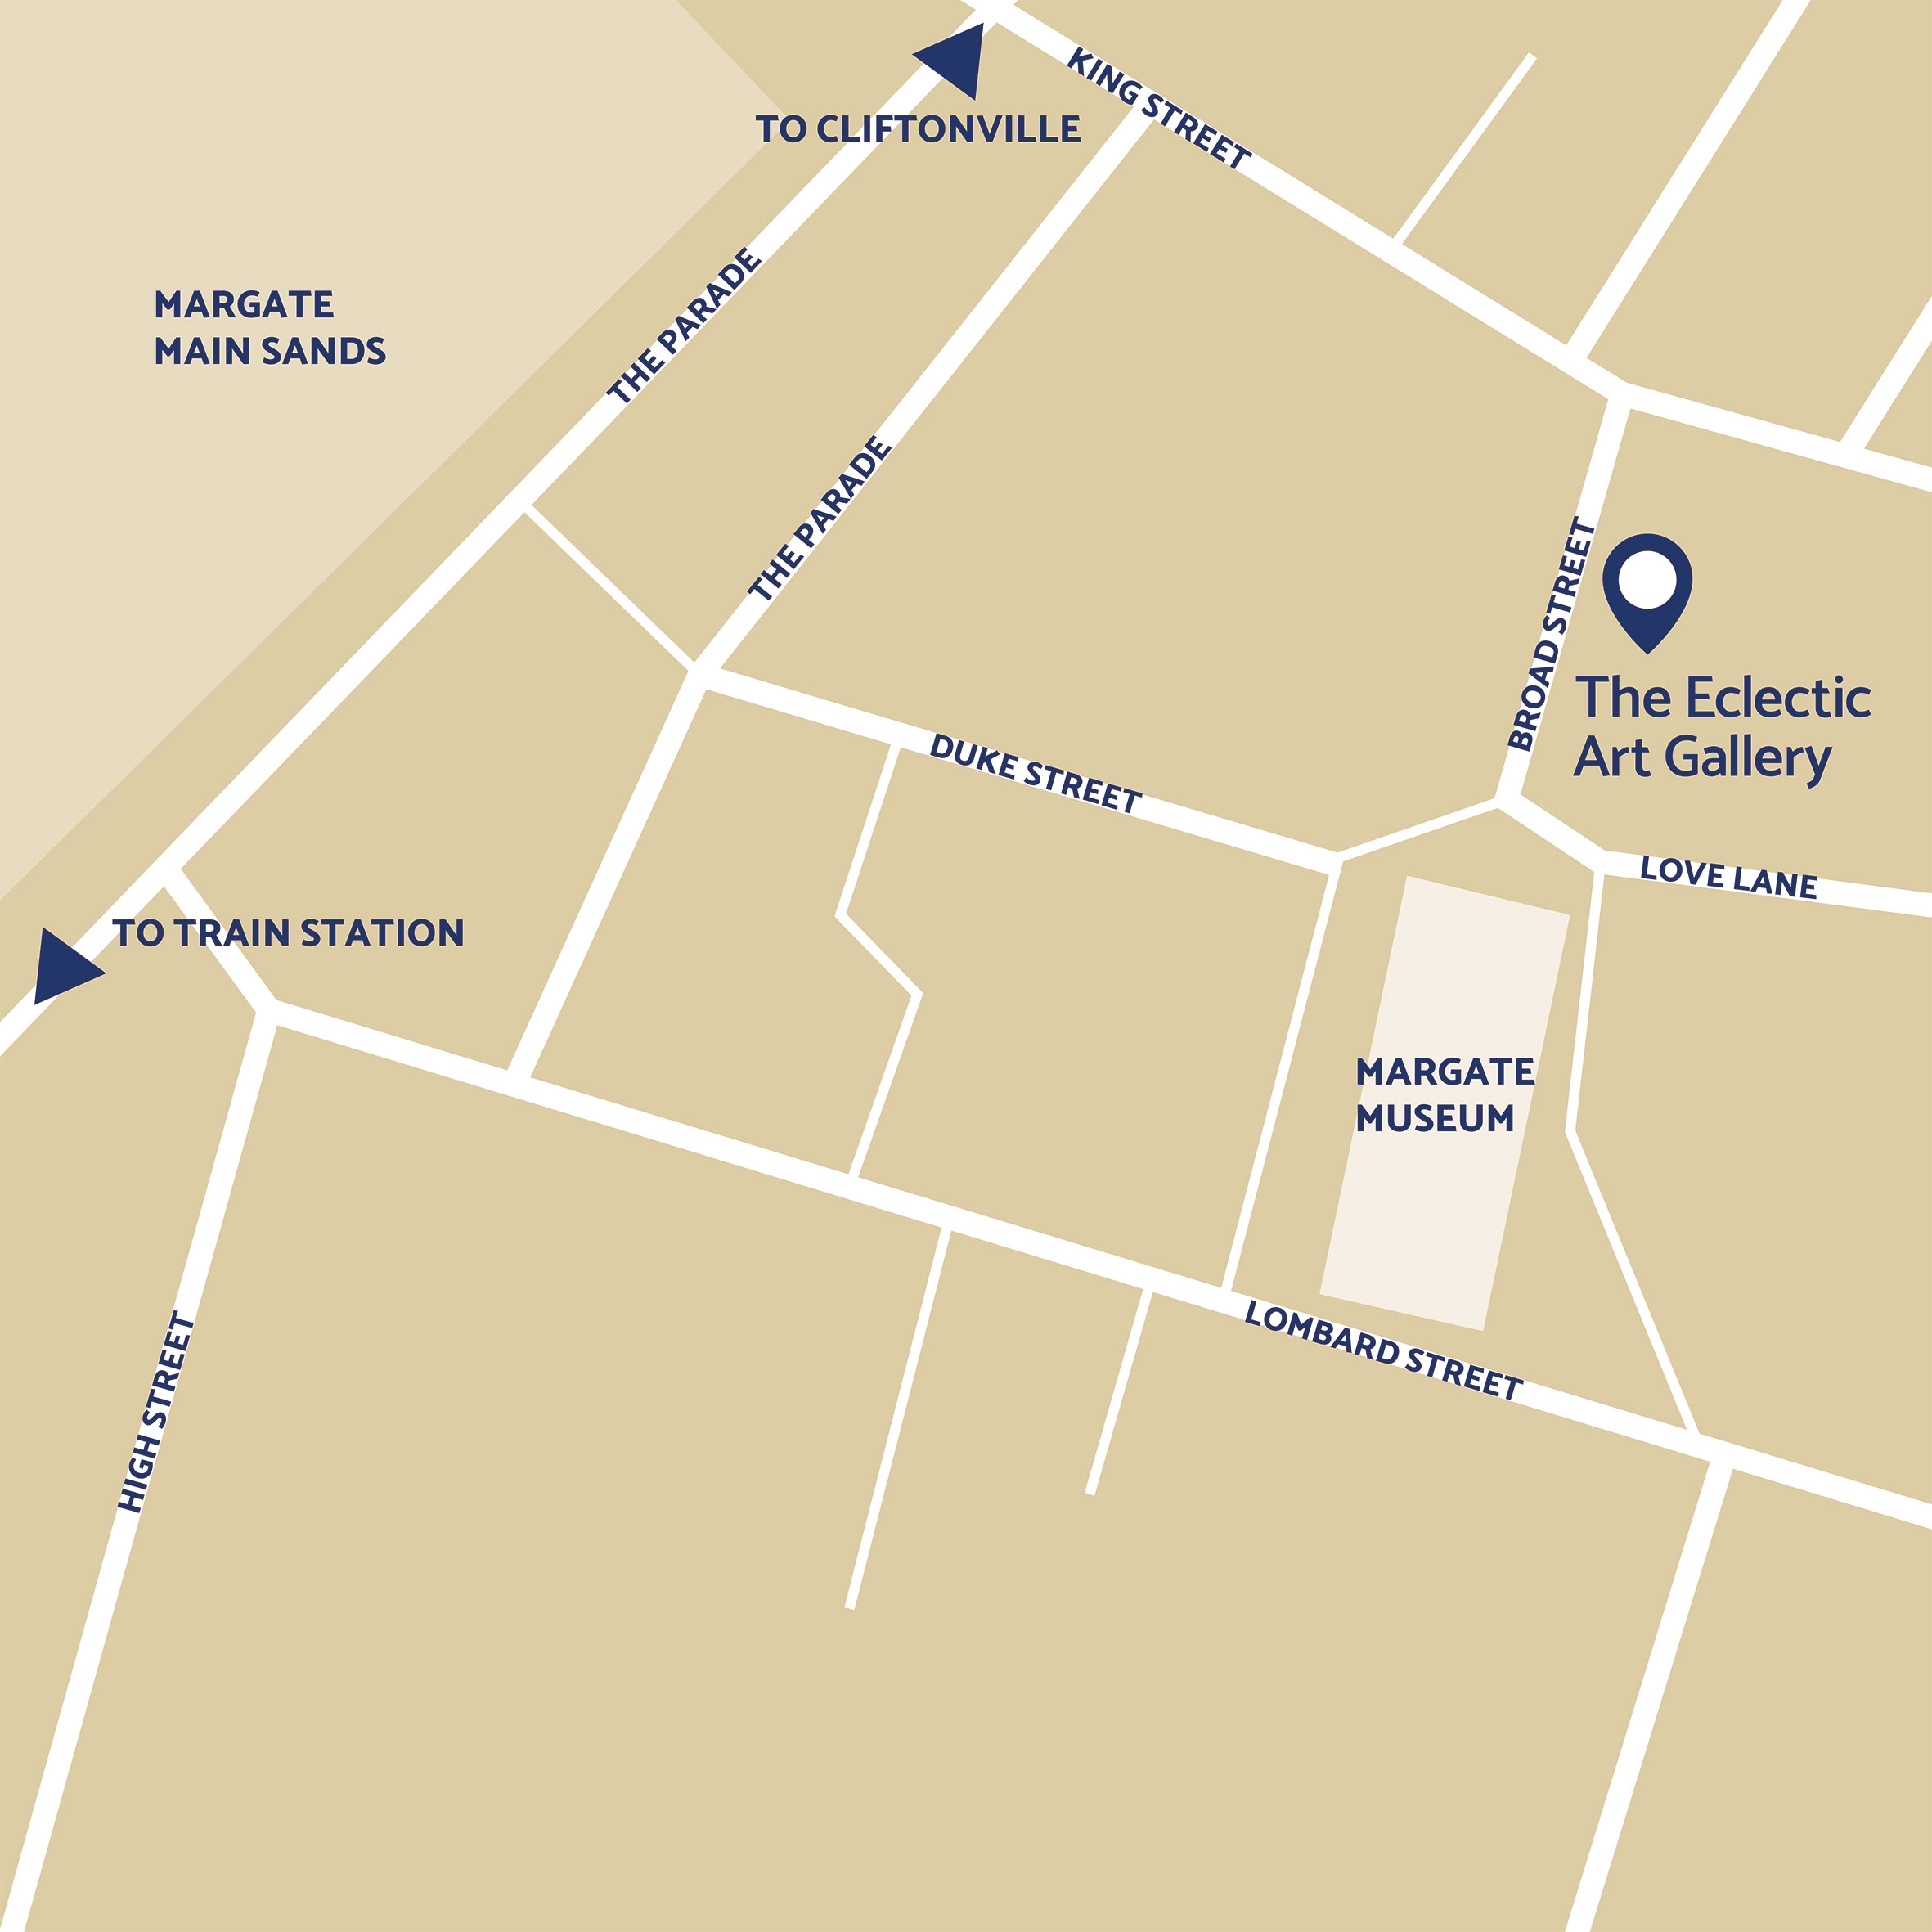 The Eclectic Art Gallery map